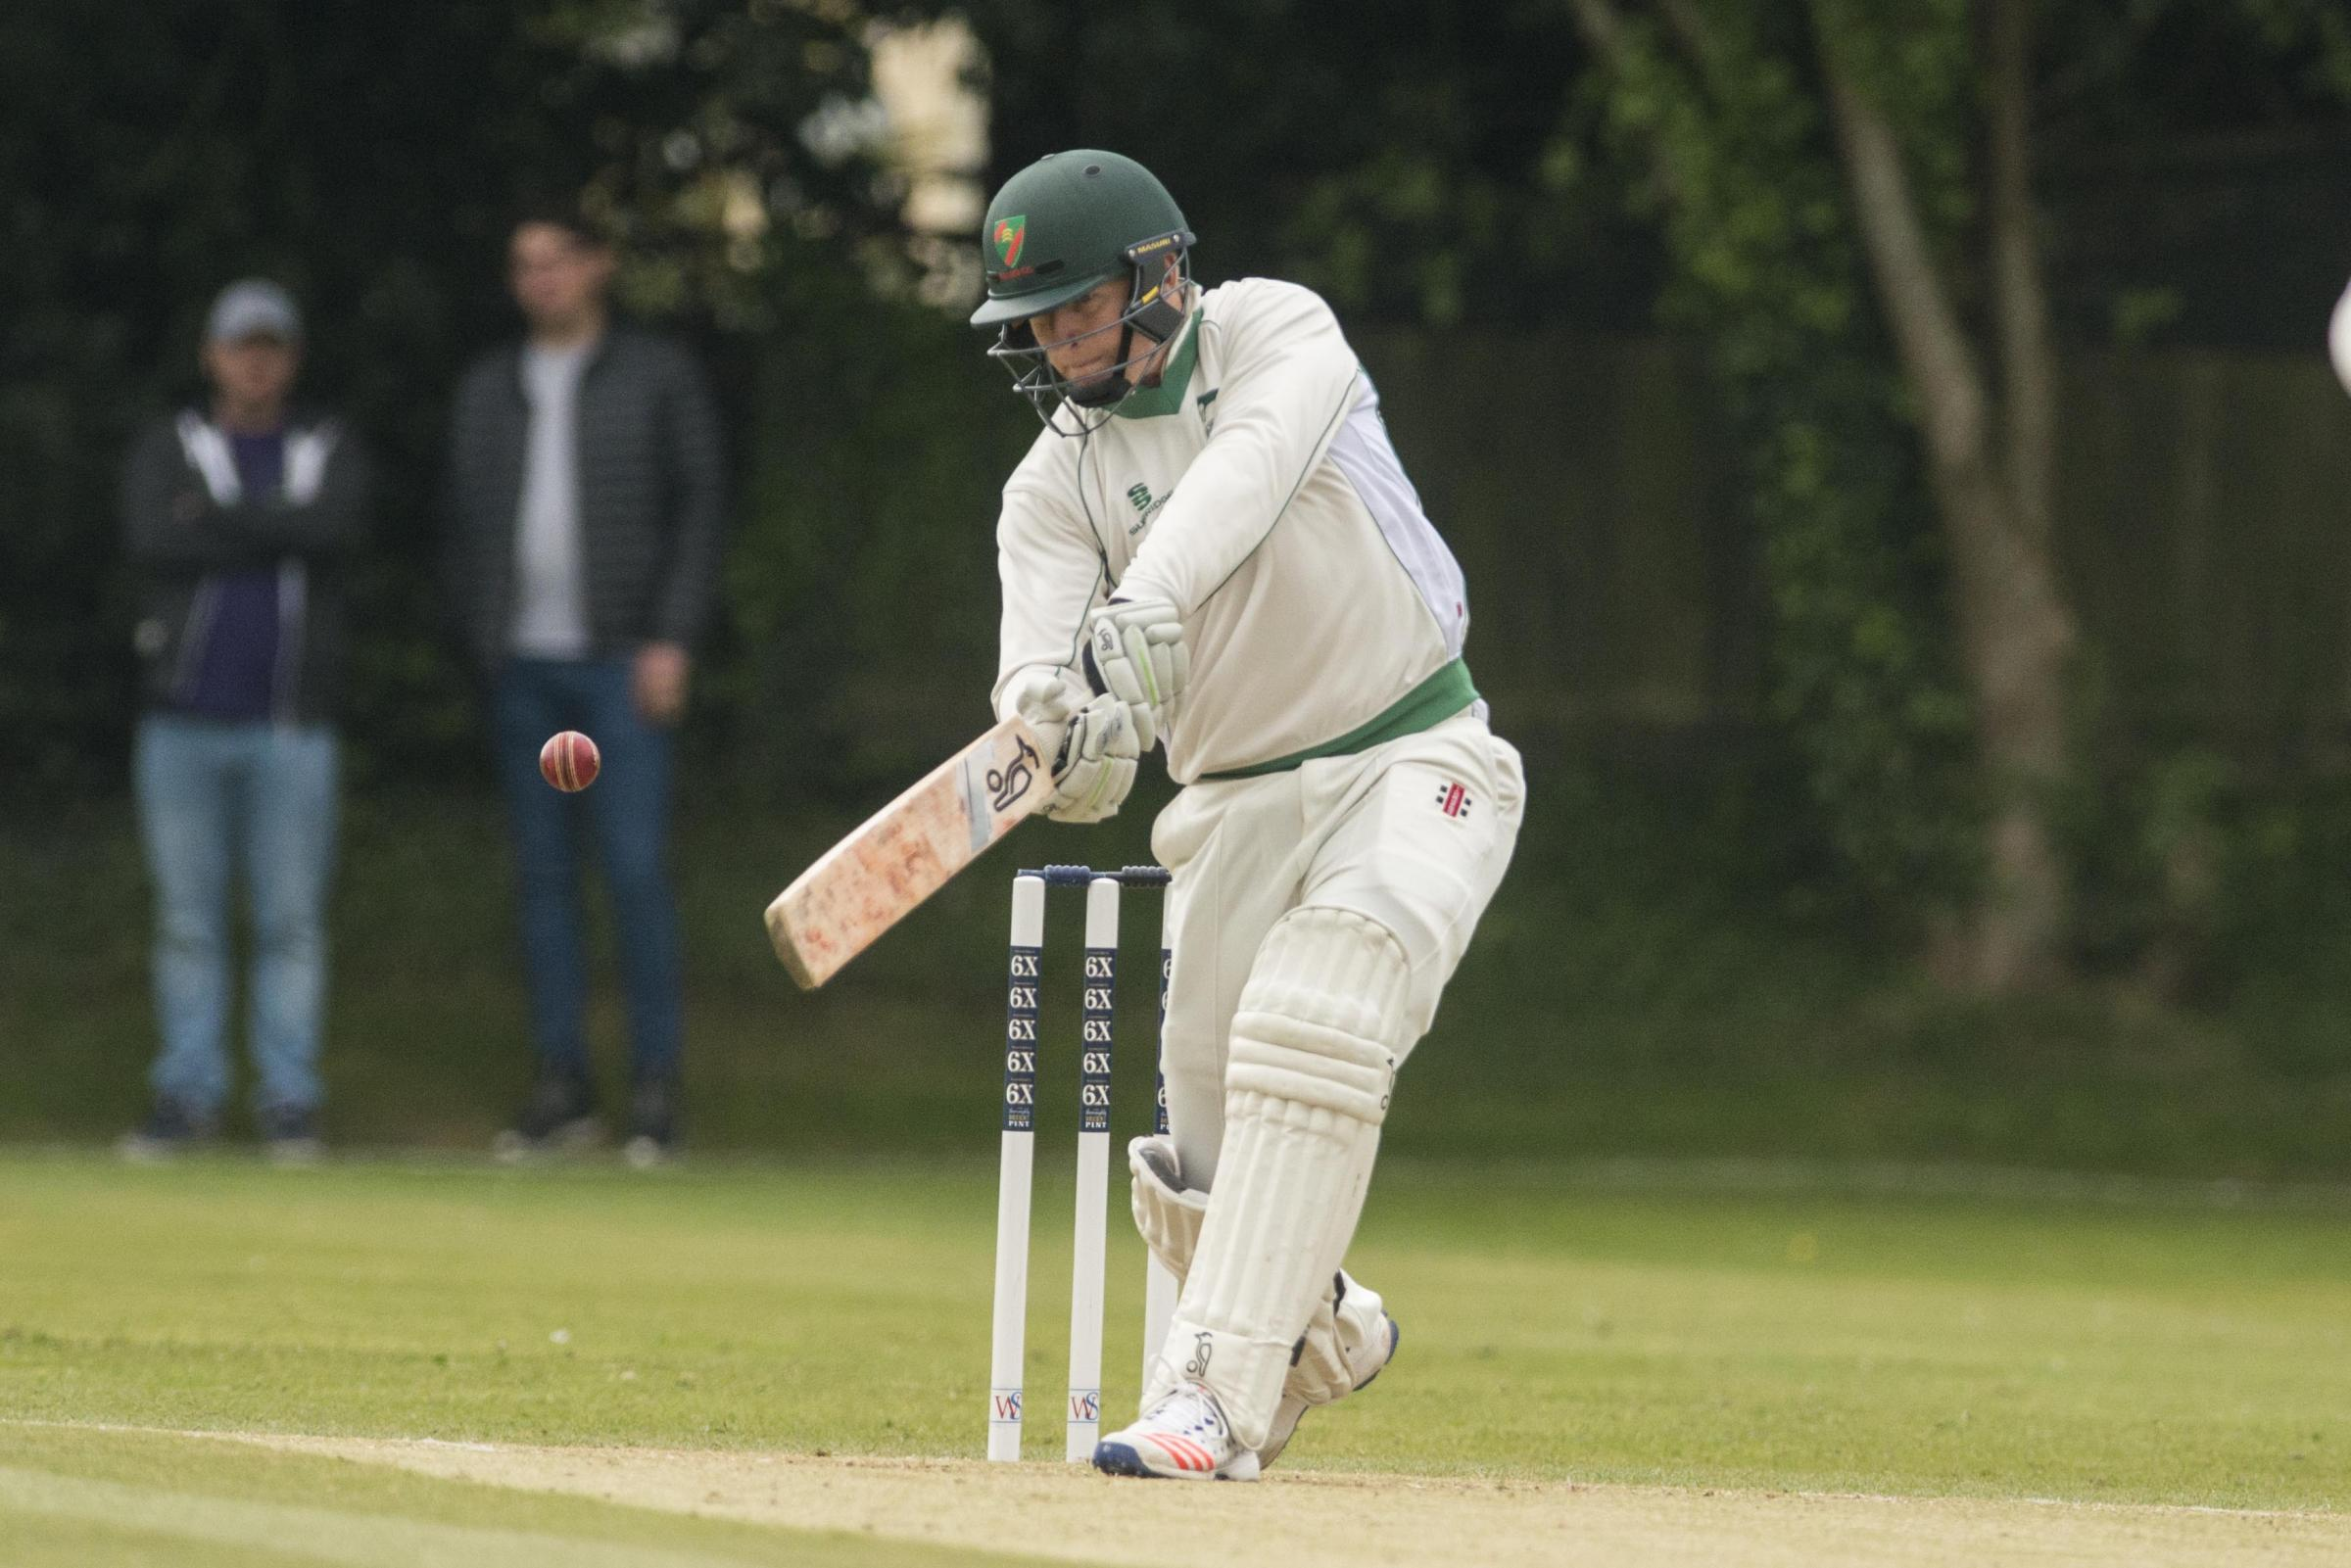 Wiltshire v Bedfordshire .Pictured Batting Wiltshire - Tom Morton.CG194-007.07/05/17.Pictures Clare Green/ www.claregreenphotography.com.